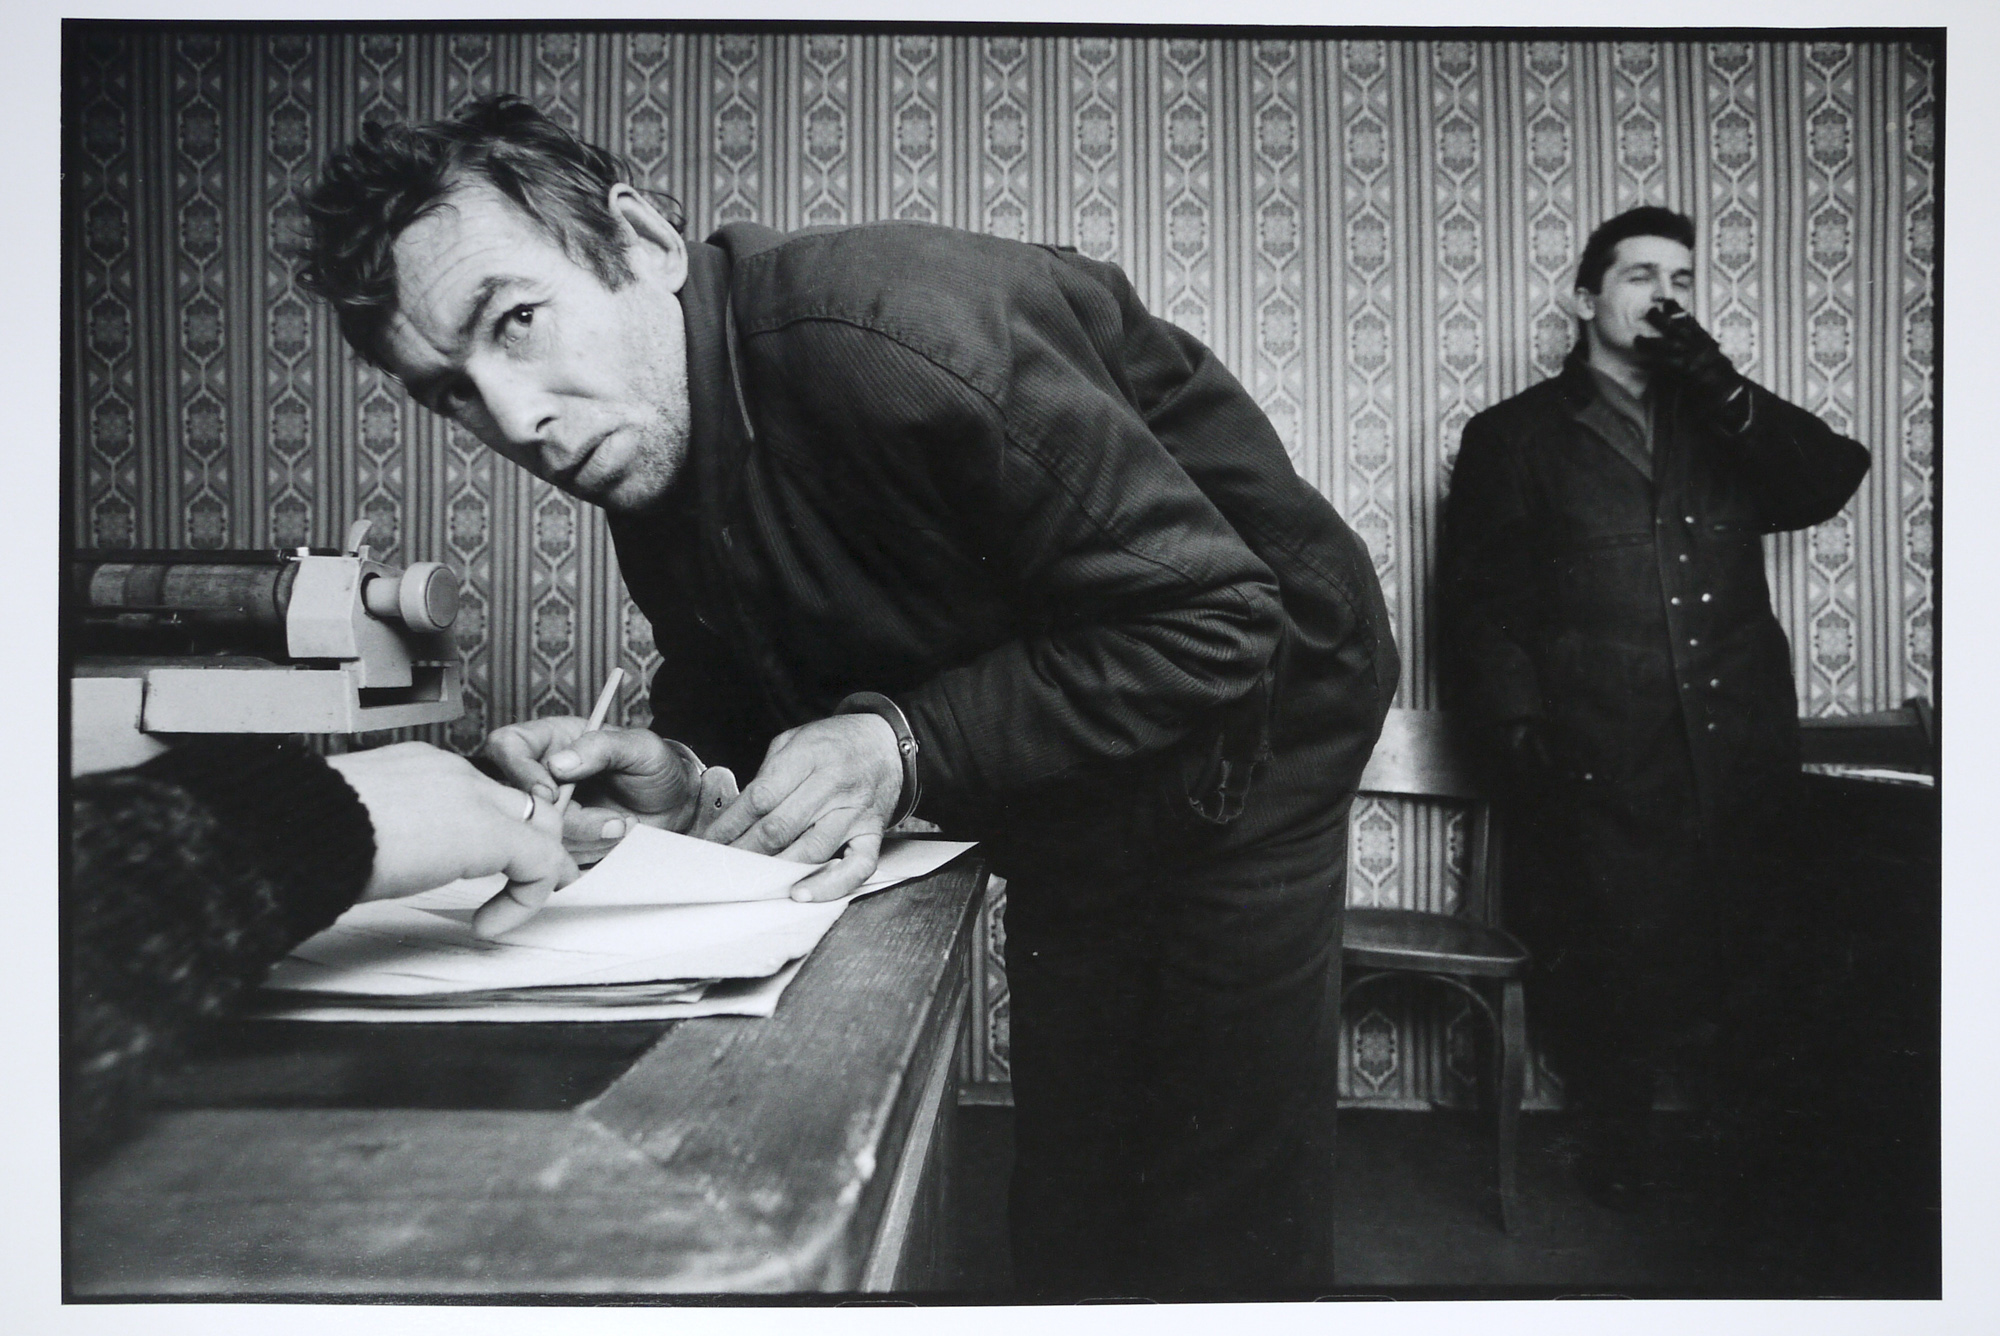 A petty thief signing his confession at the local police station. The arresting officer stands in the background, December 1992.